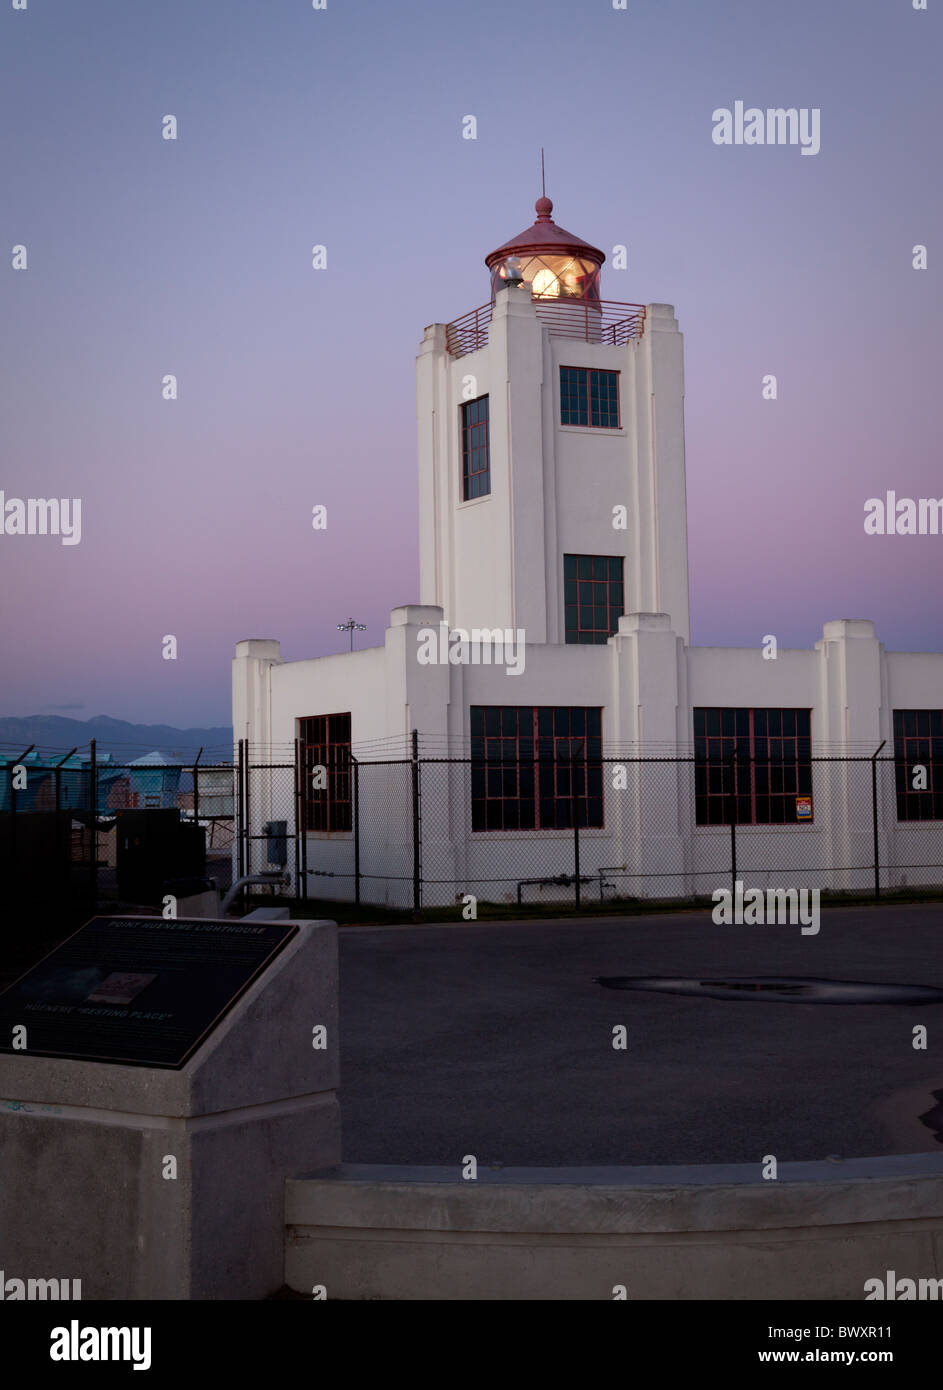 Port of Hueneme Lighthouse at sunset - Stock Image